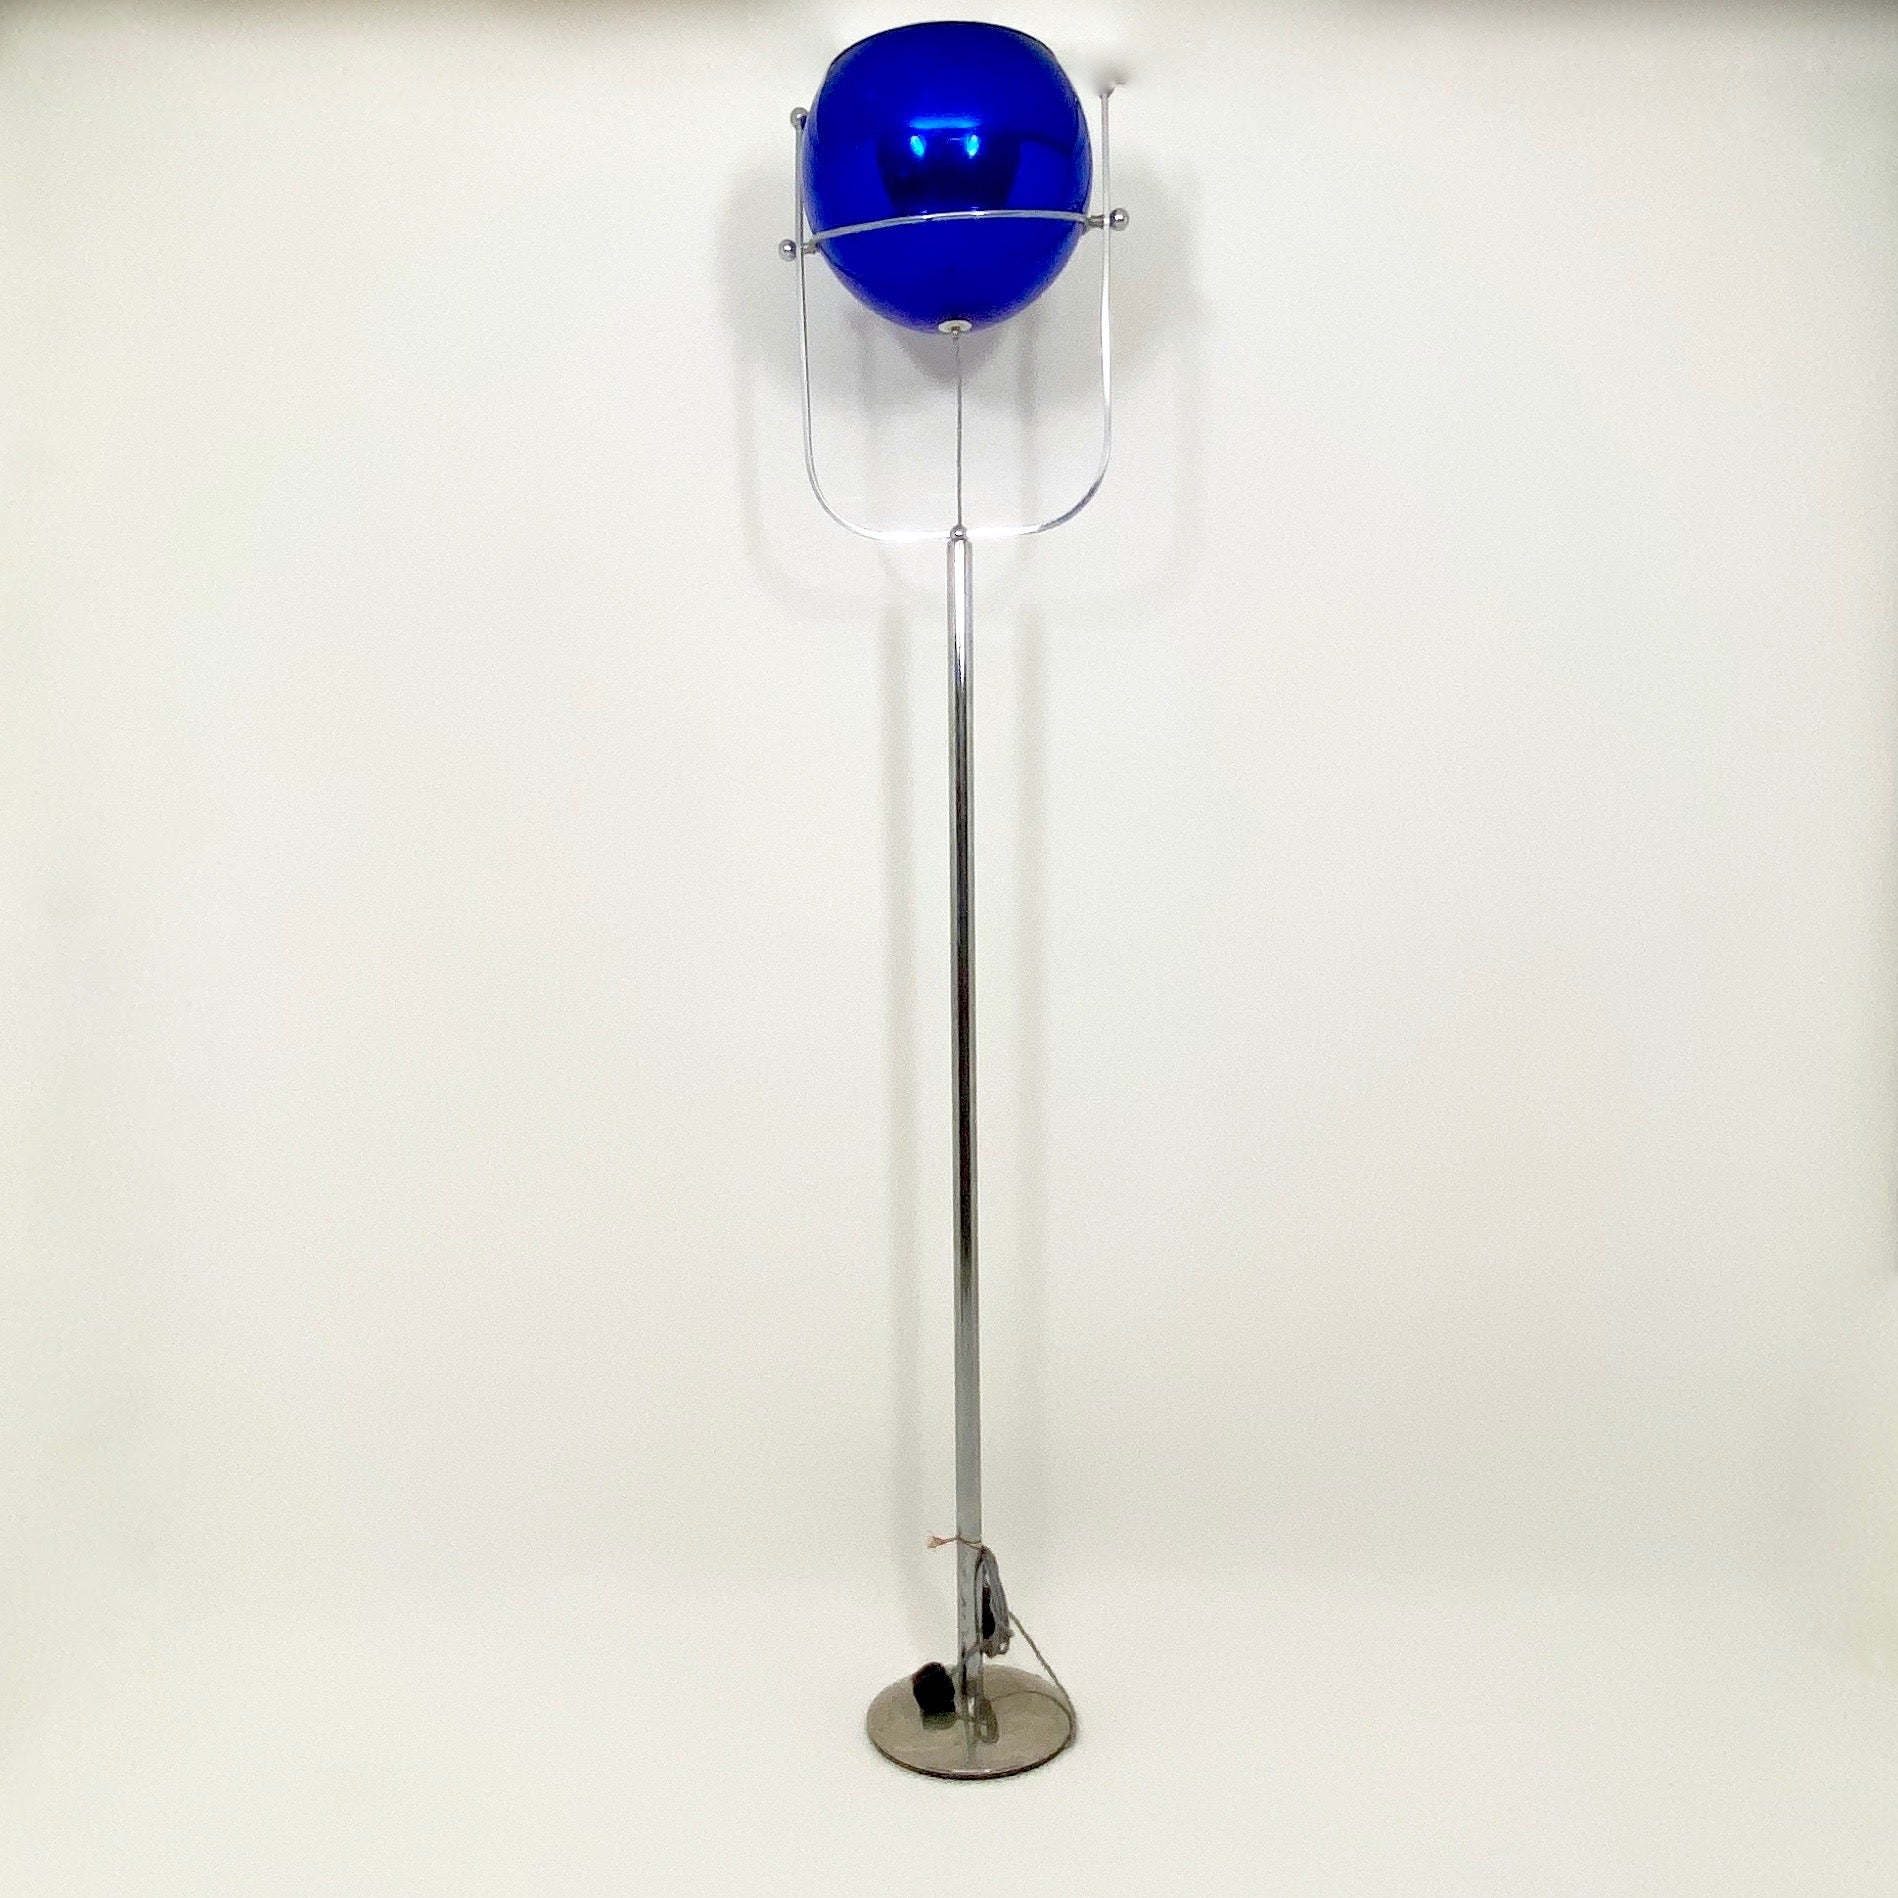 Italian mid century uplighter with adjustable blue glass shade.